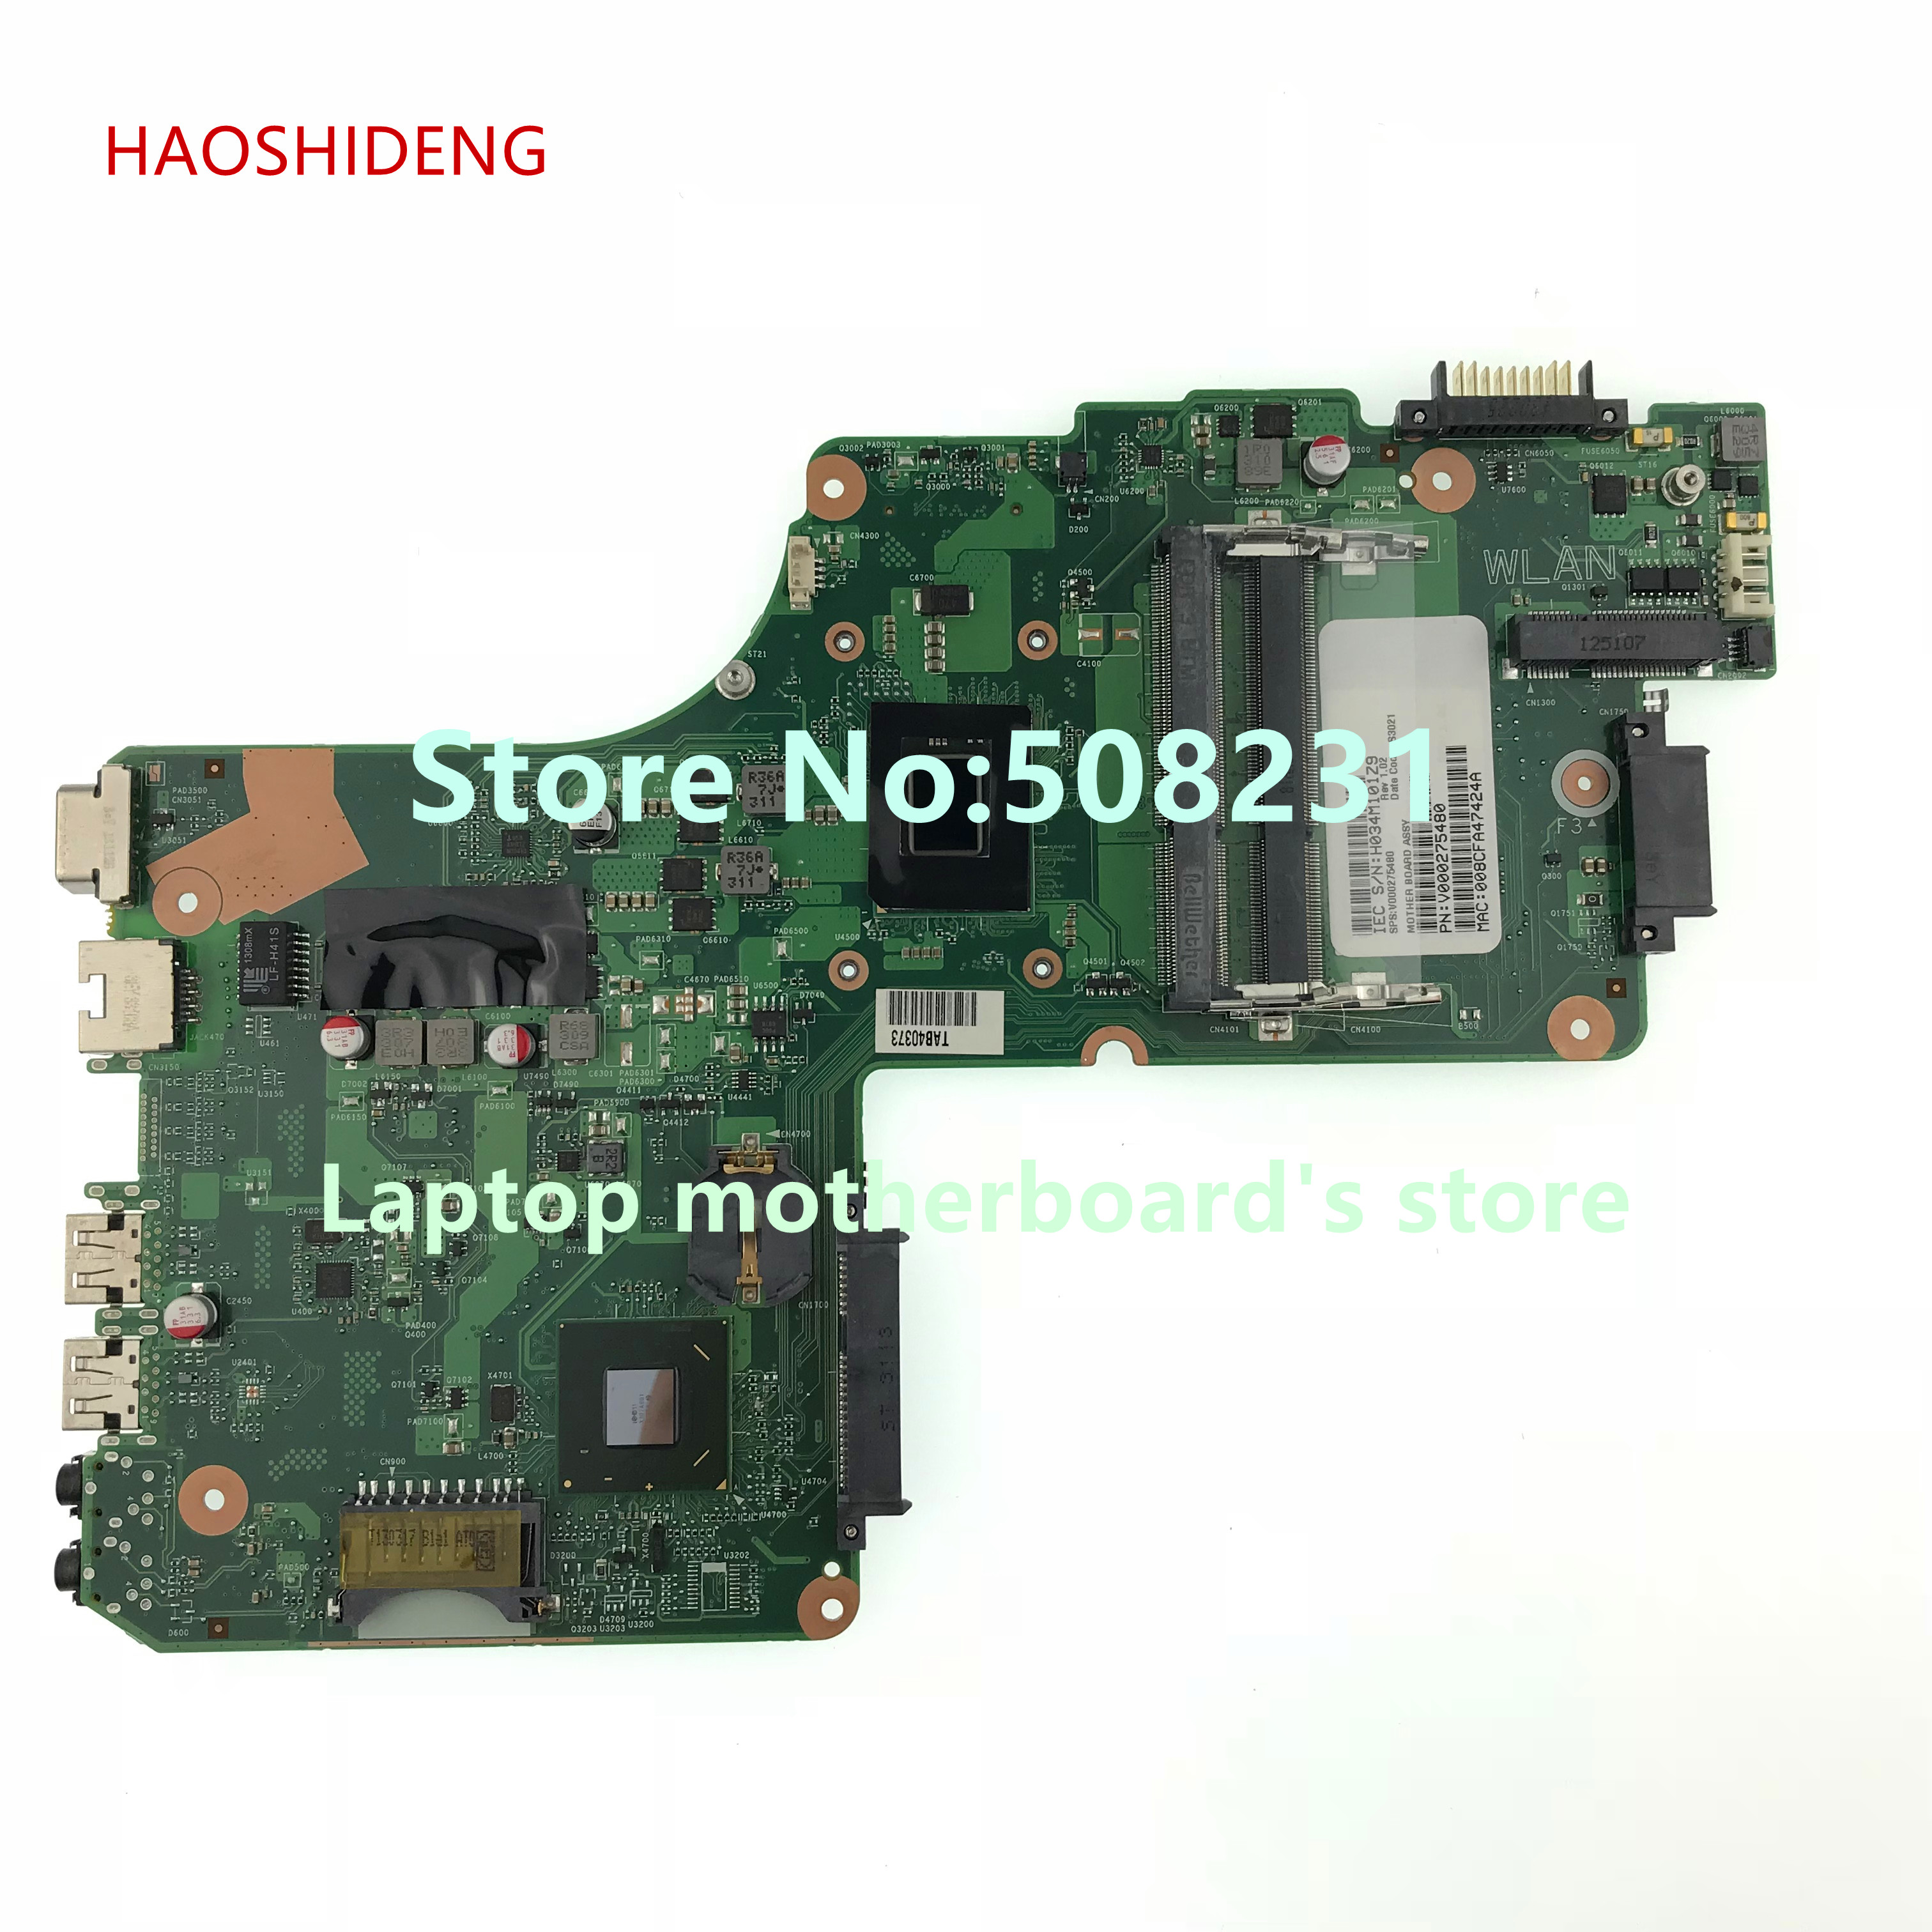 HAOSHIDENG V000275480 mainboard For Toshiba Satellite C855 Motherboard Dk10f-6050a25407 with Intel Celeron 847 fully Tested